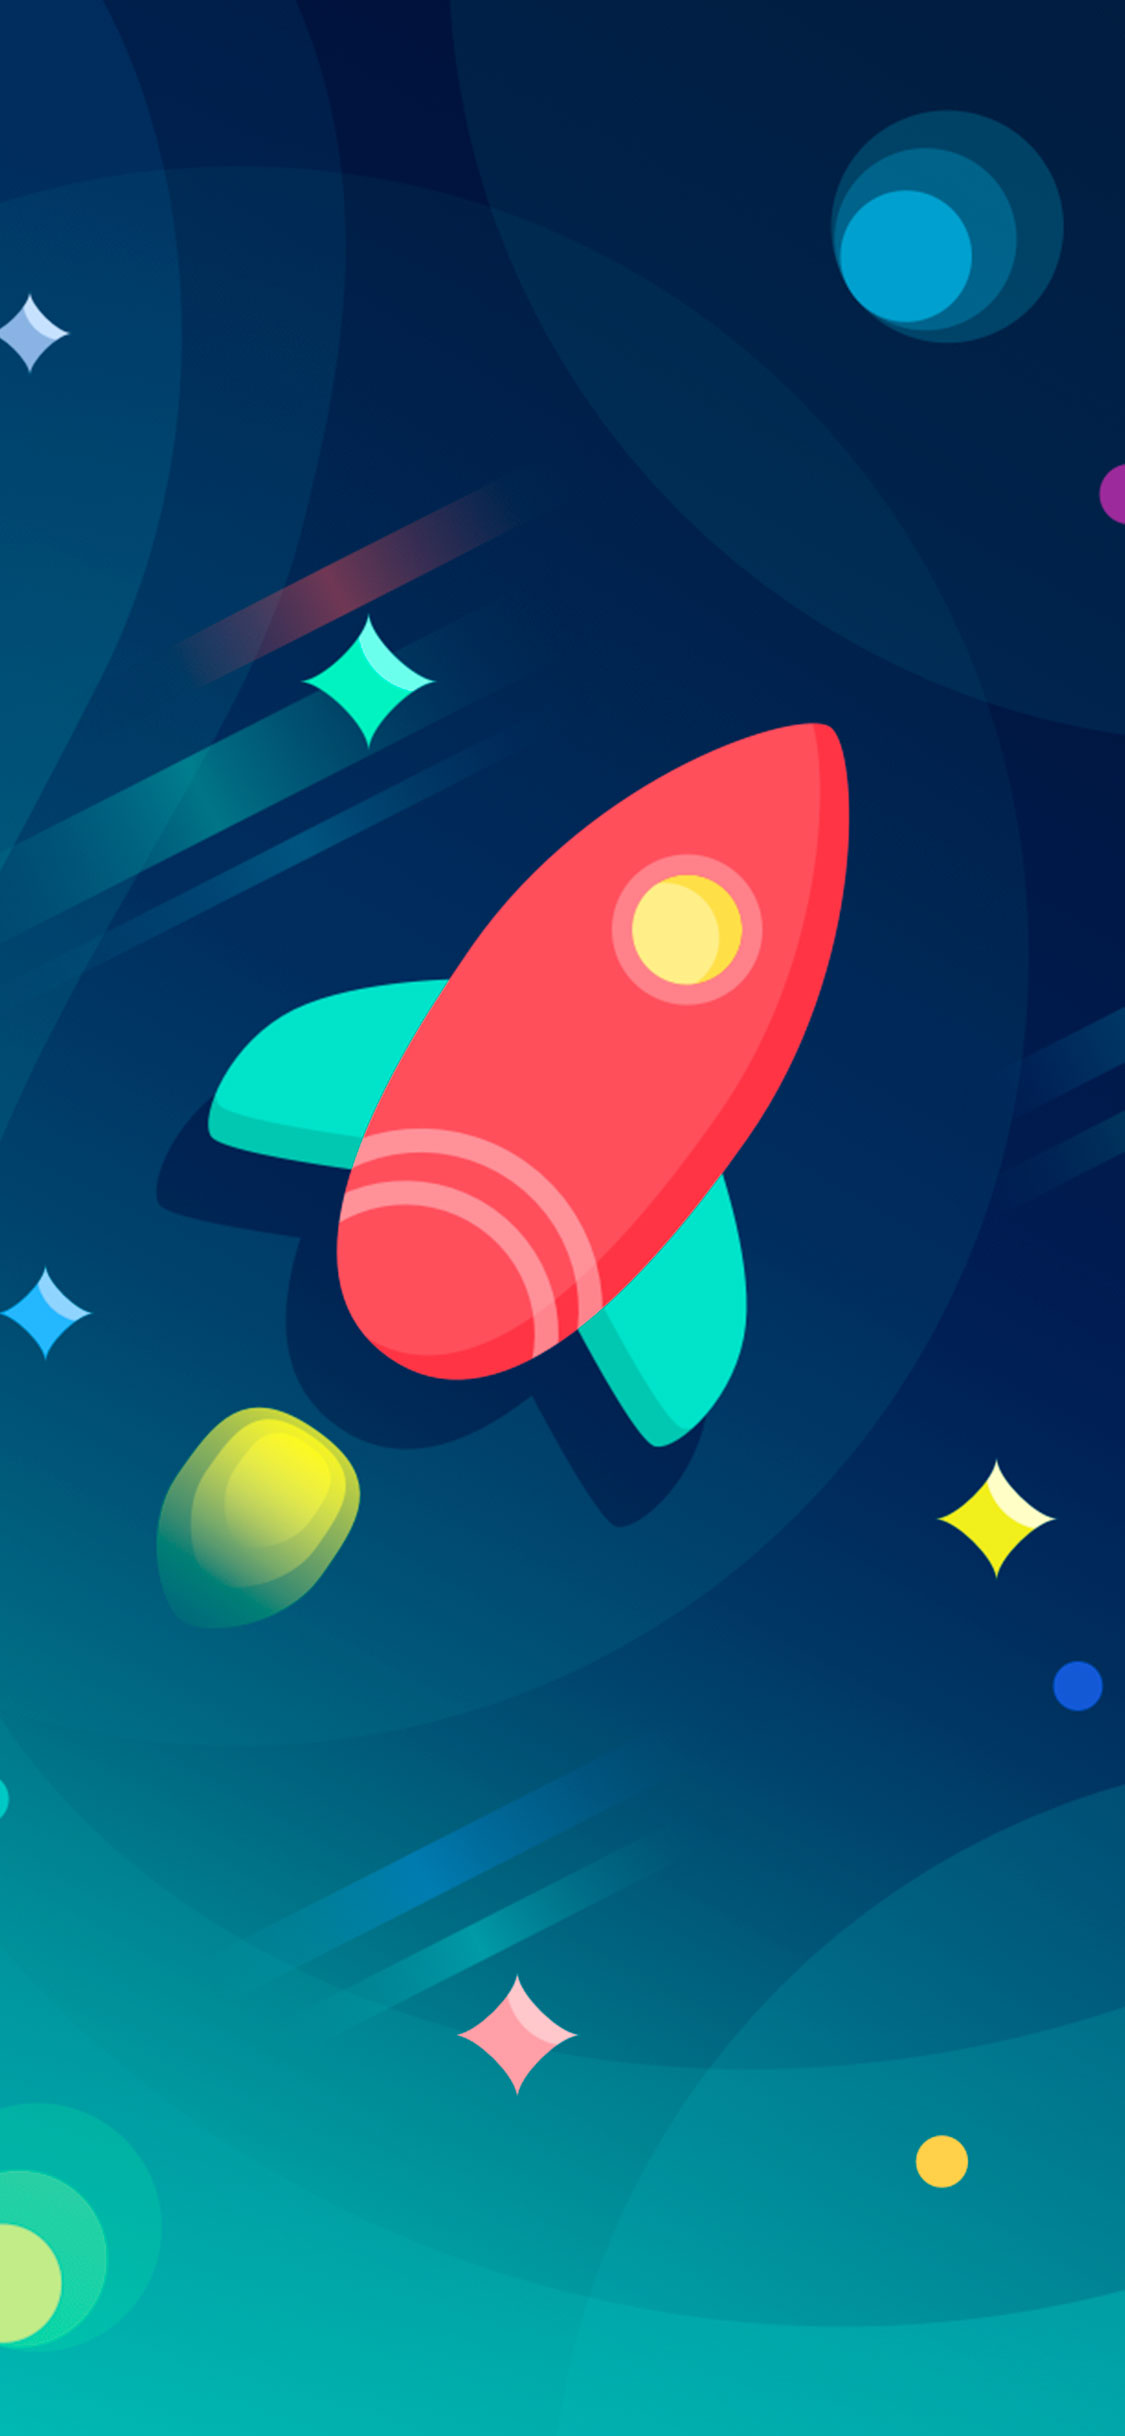 iPhone wallpaper illustration rocket Illustration